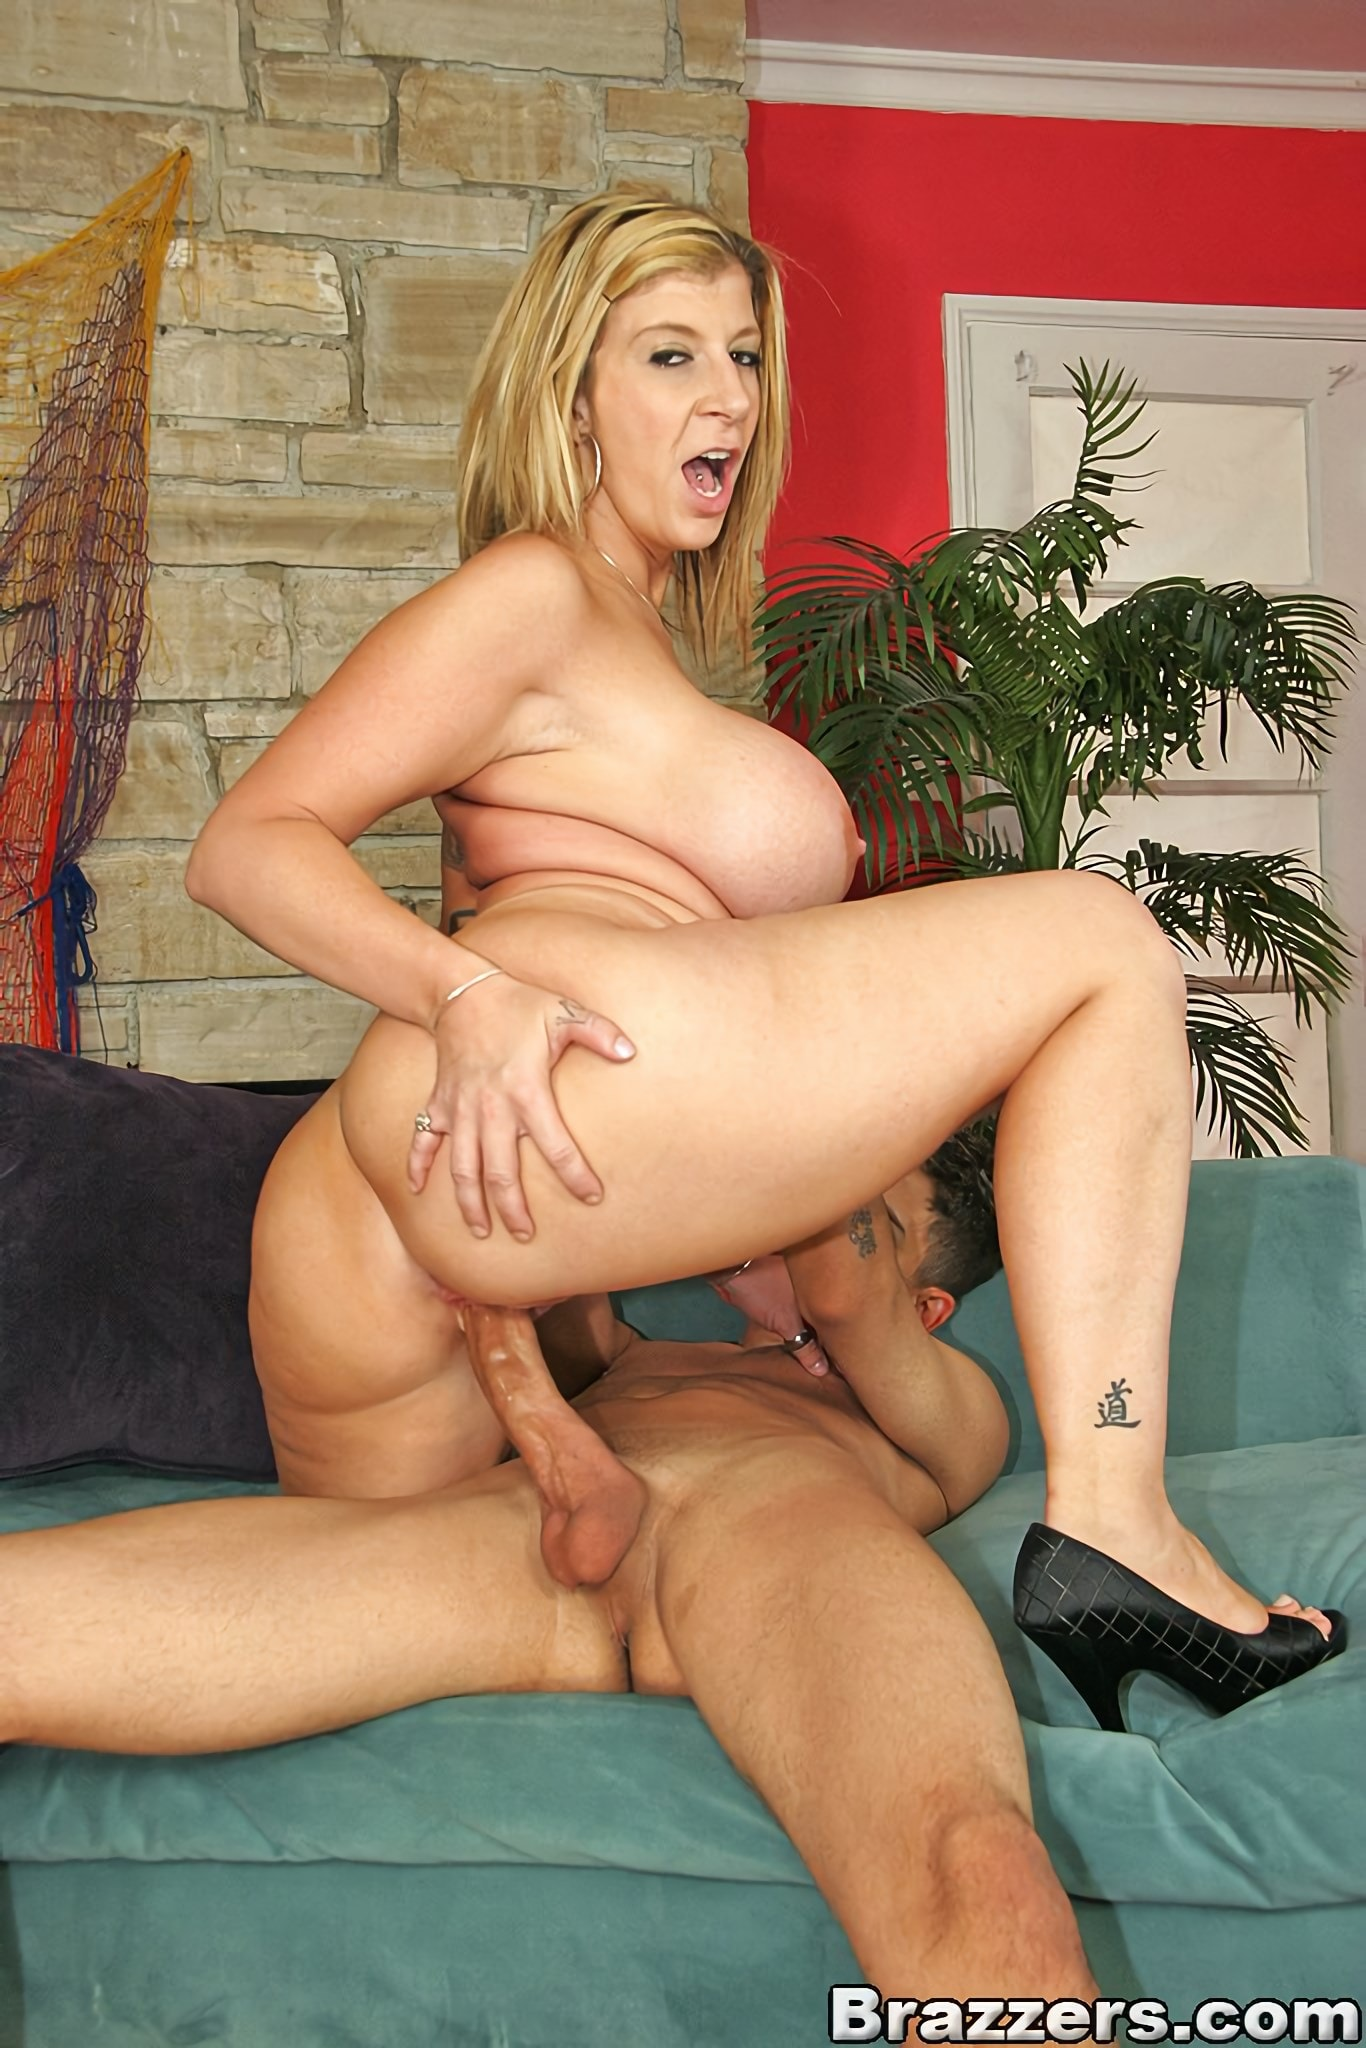 Most Viewed Sex Pro Adventures Pics And Galleries